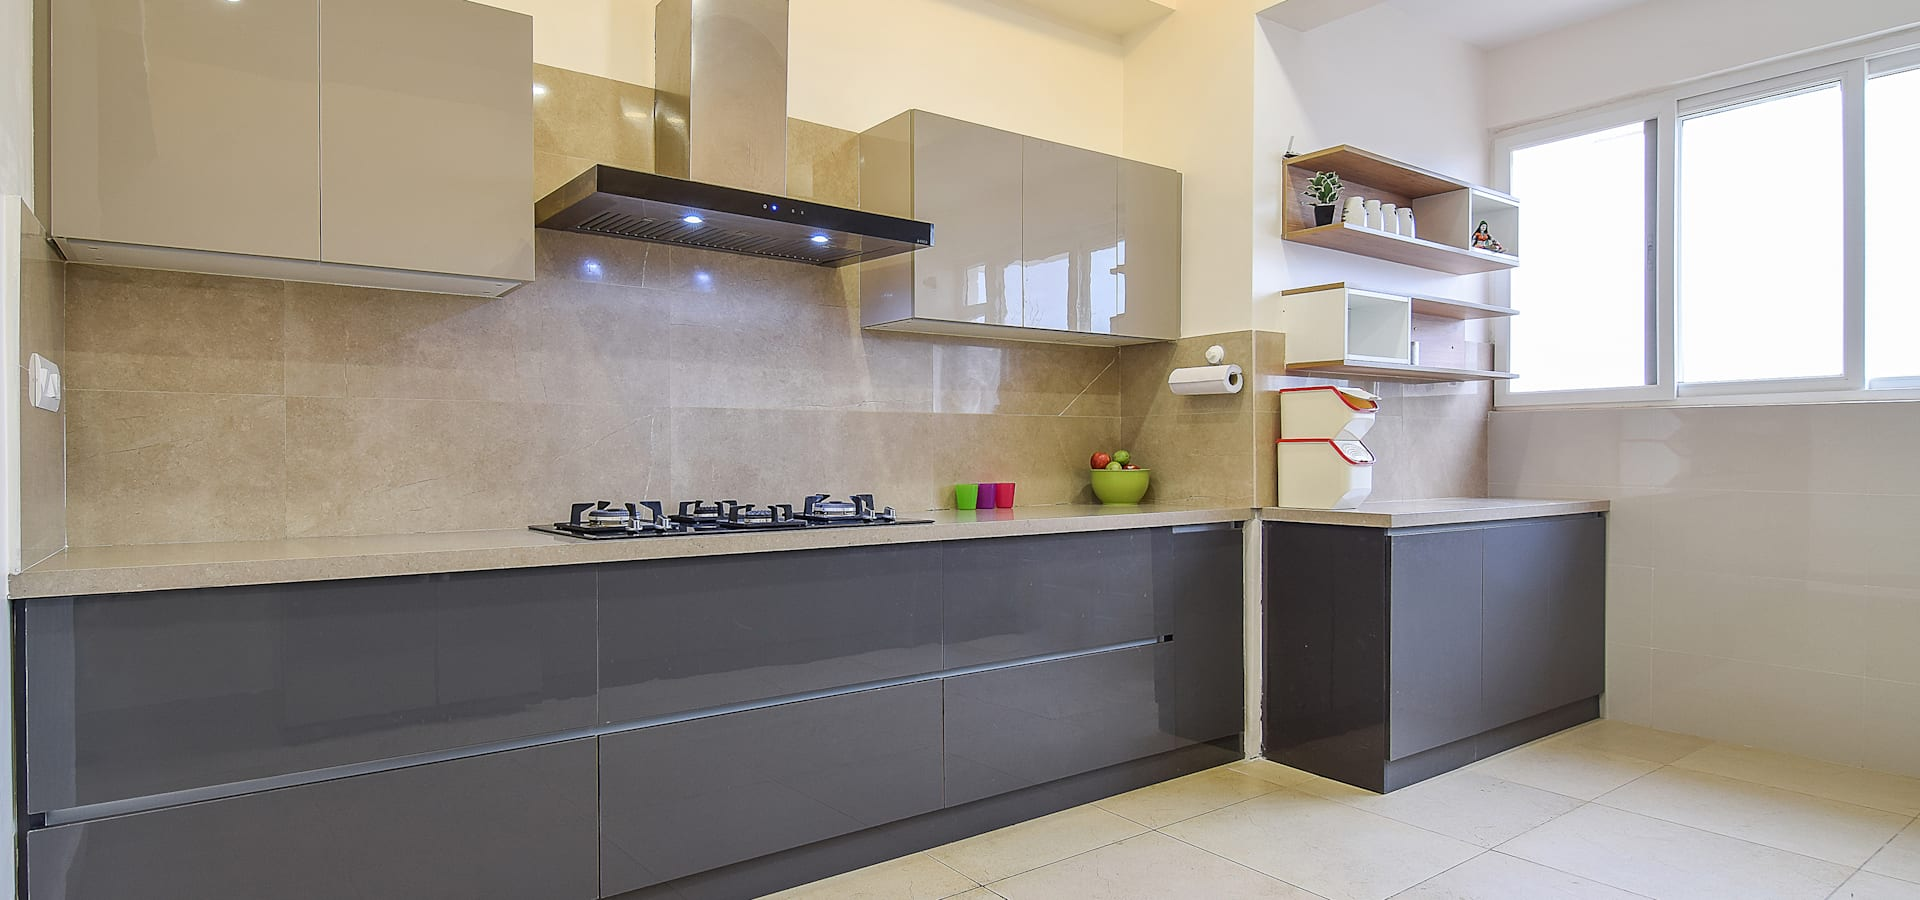 Interior Design Bangalore 2bhk Apartment By Design Arc Interiors Interior Design Company Homify